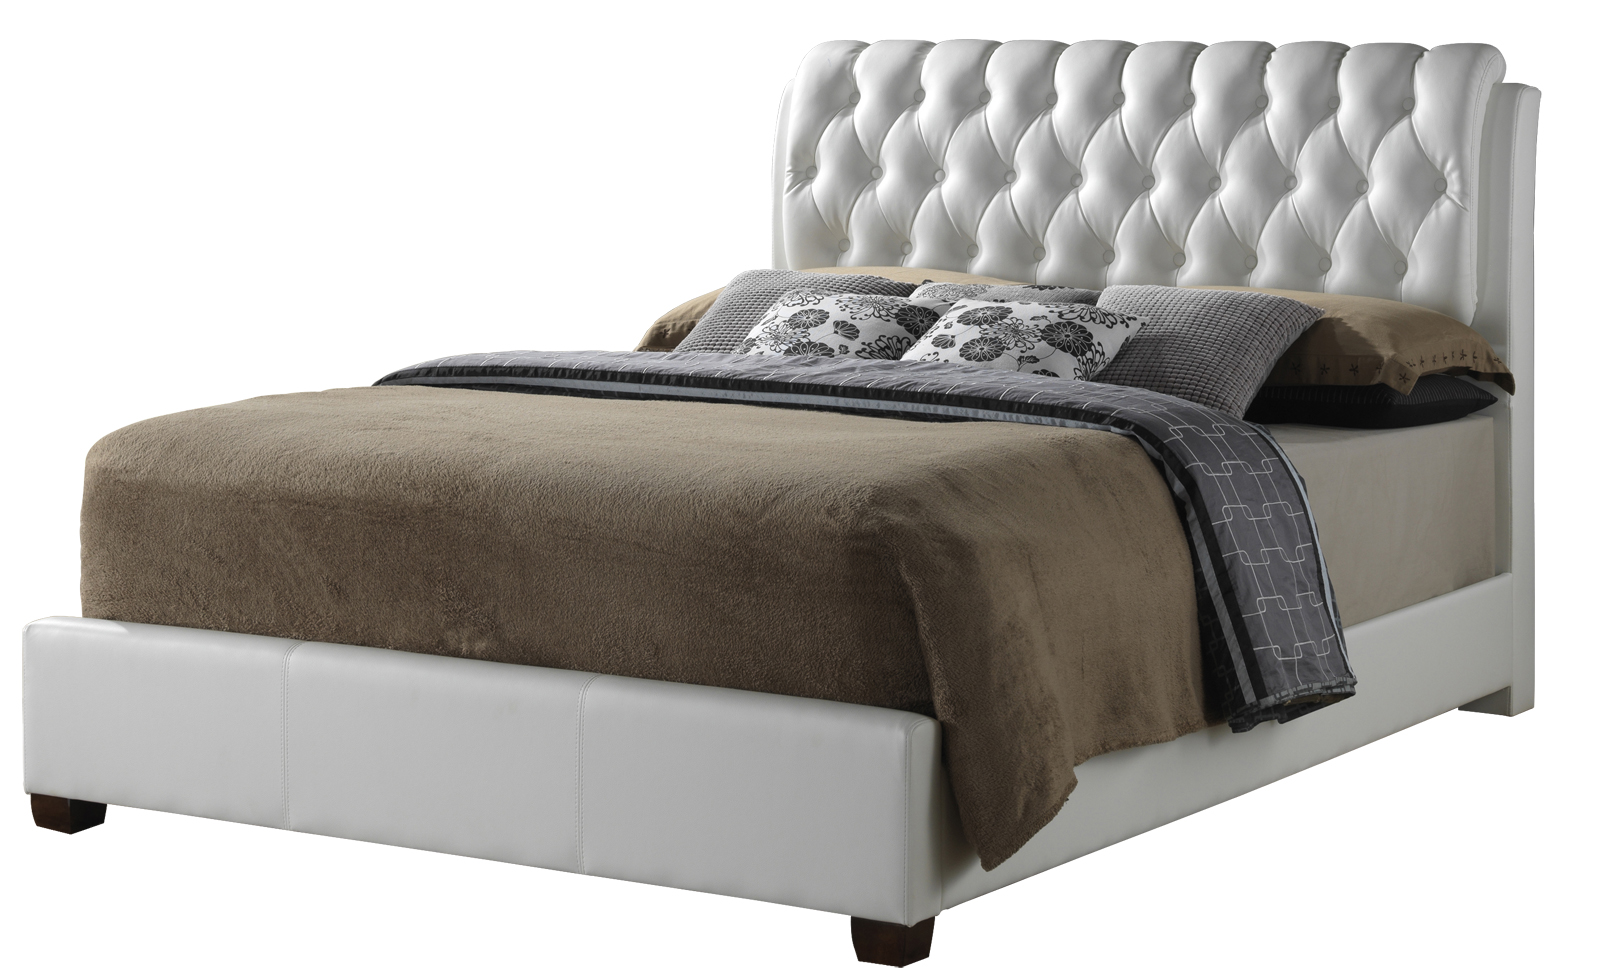 glory glory furniture g1570 king button tufted bed in white g1570c kb up g1570 collection 5. Black Bedroom Furniture Sets. Home Design Ideas